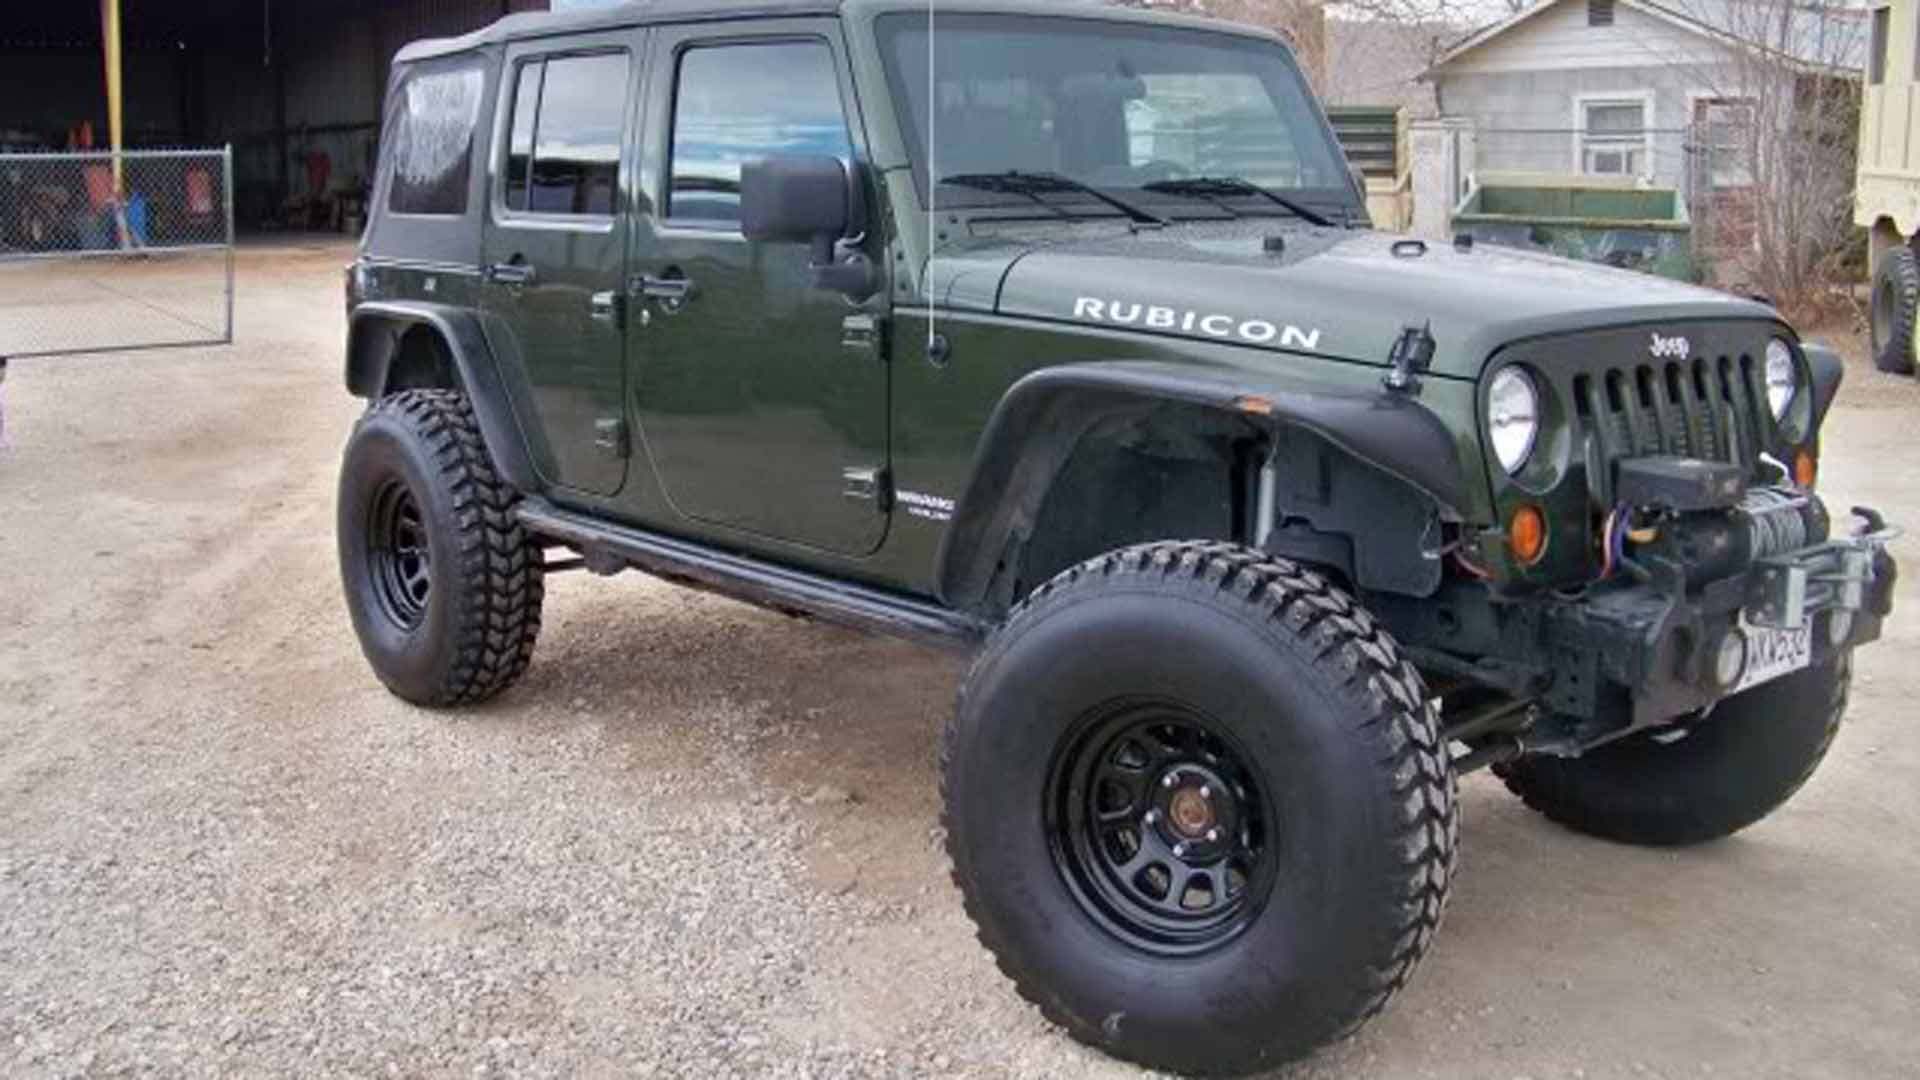 Topless covers for jk - Jeep Wrangler Forum